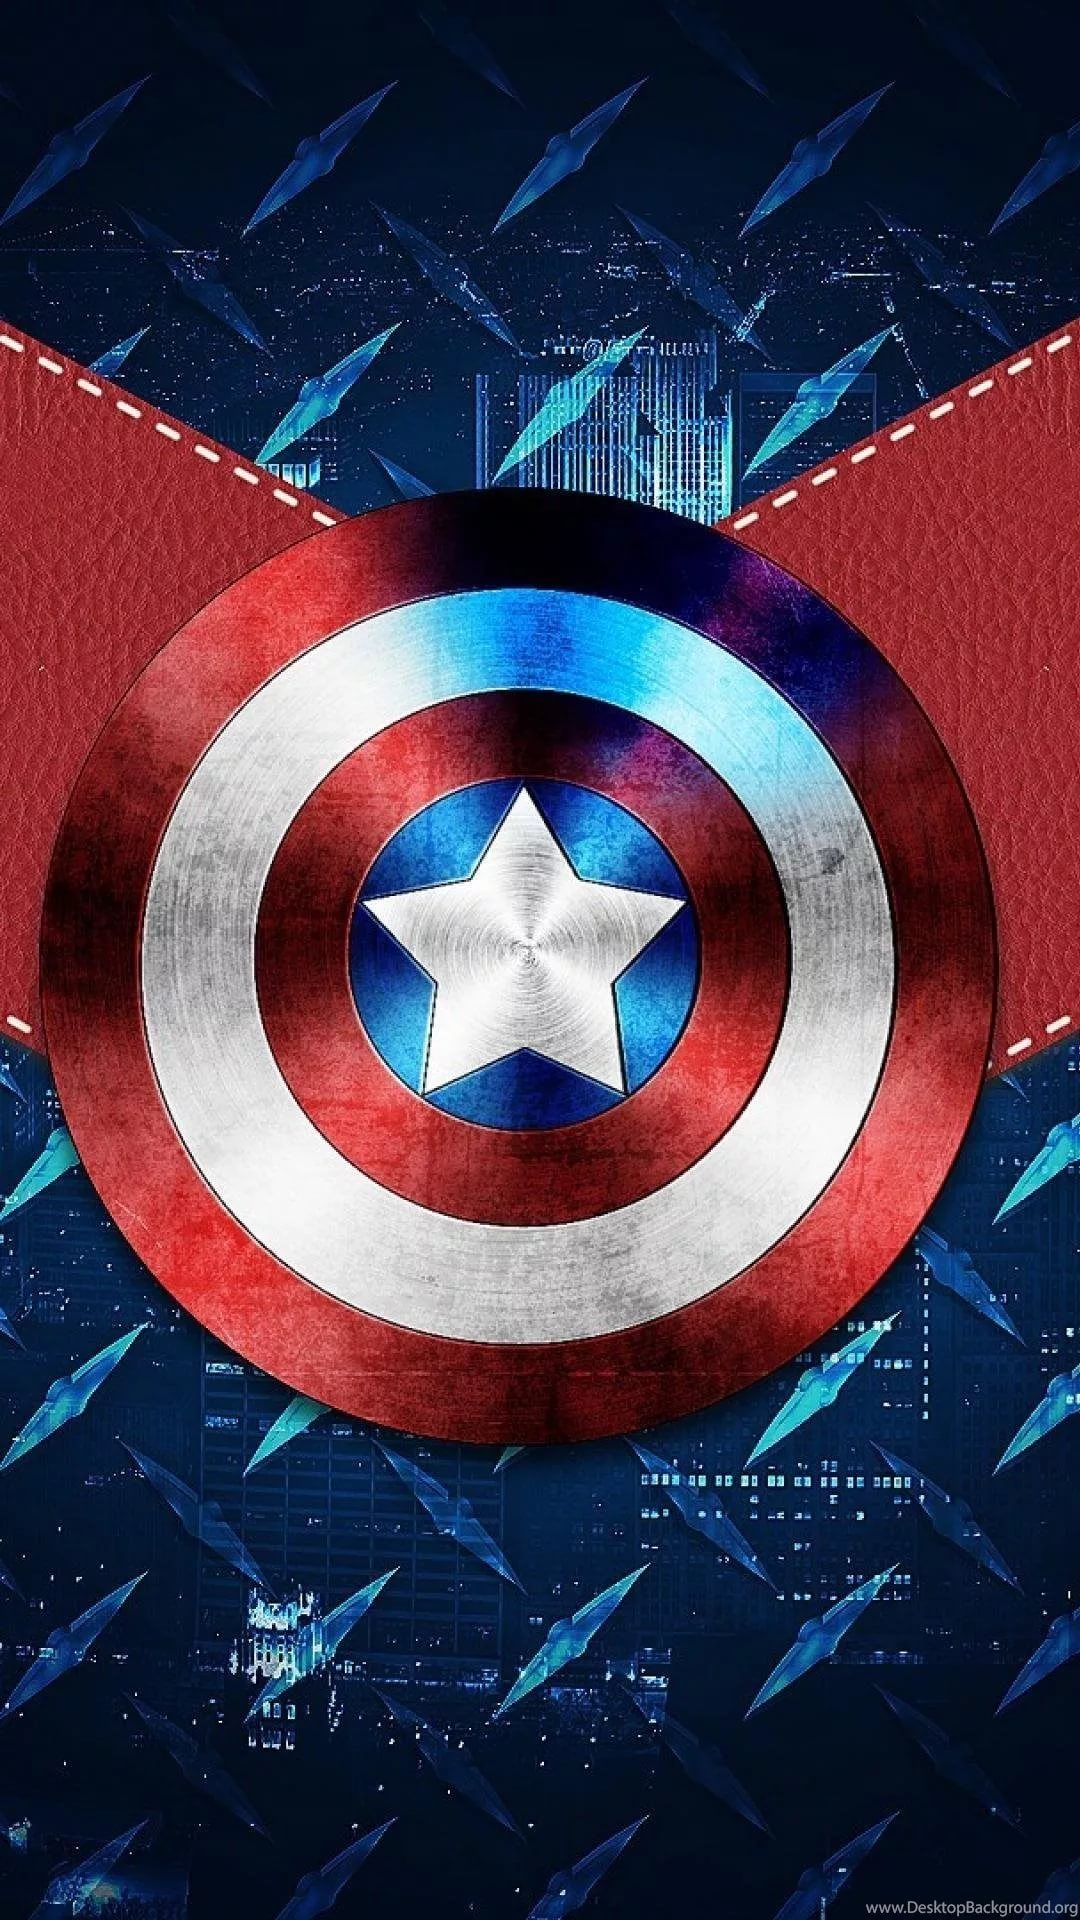 The Avengers wallpaper for android